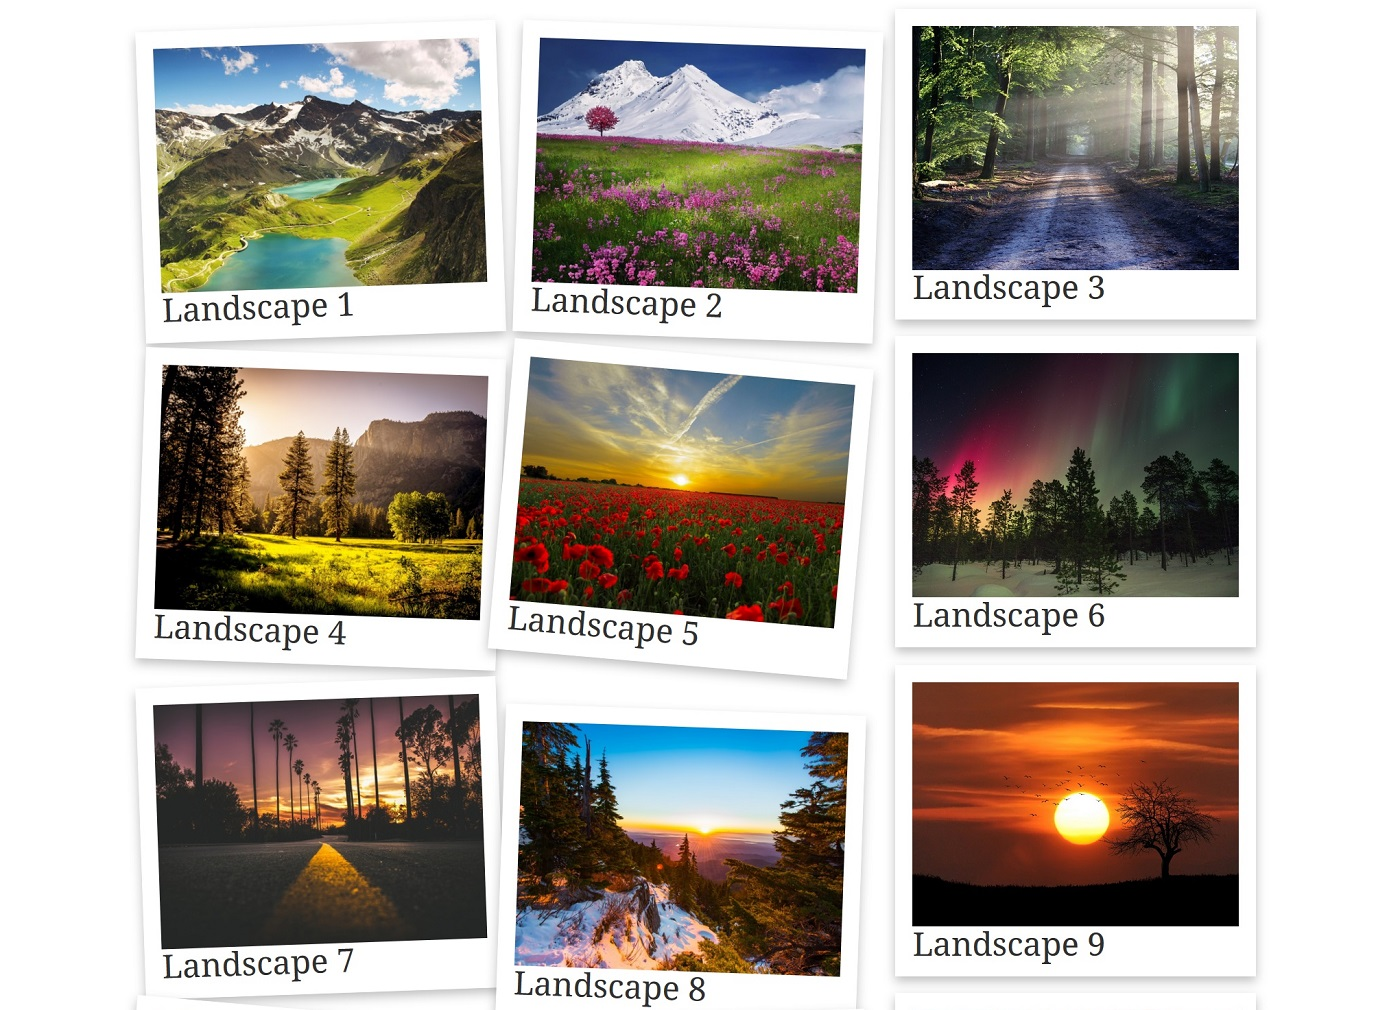 A screenshot of a 3-column gallery in polaroid style